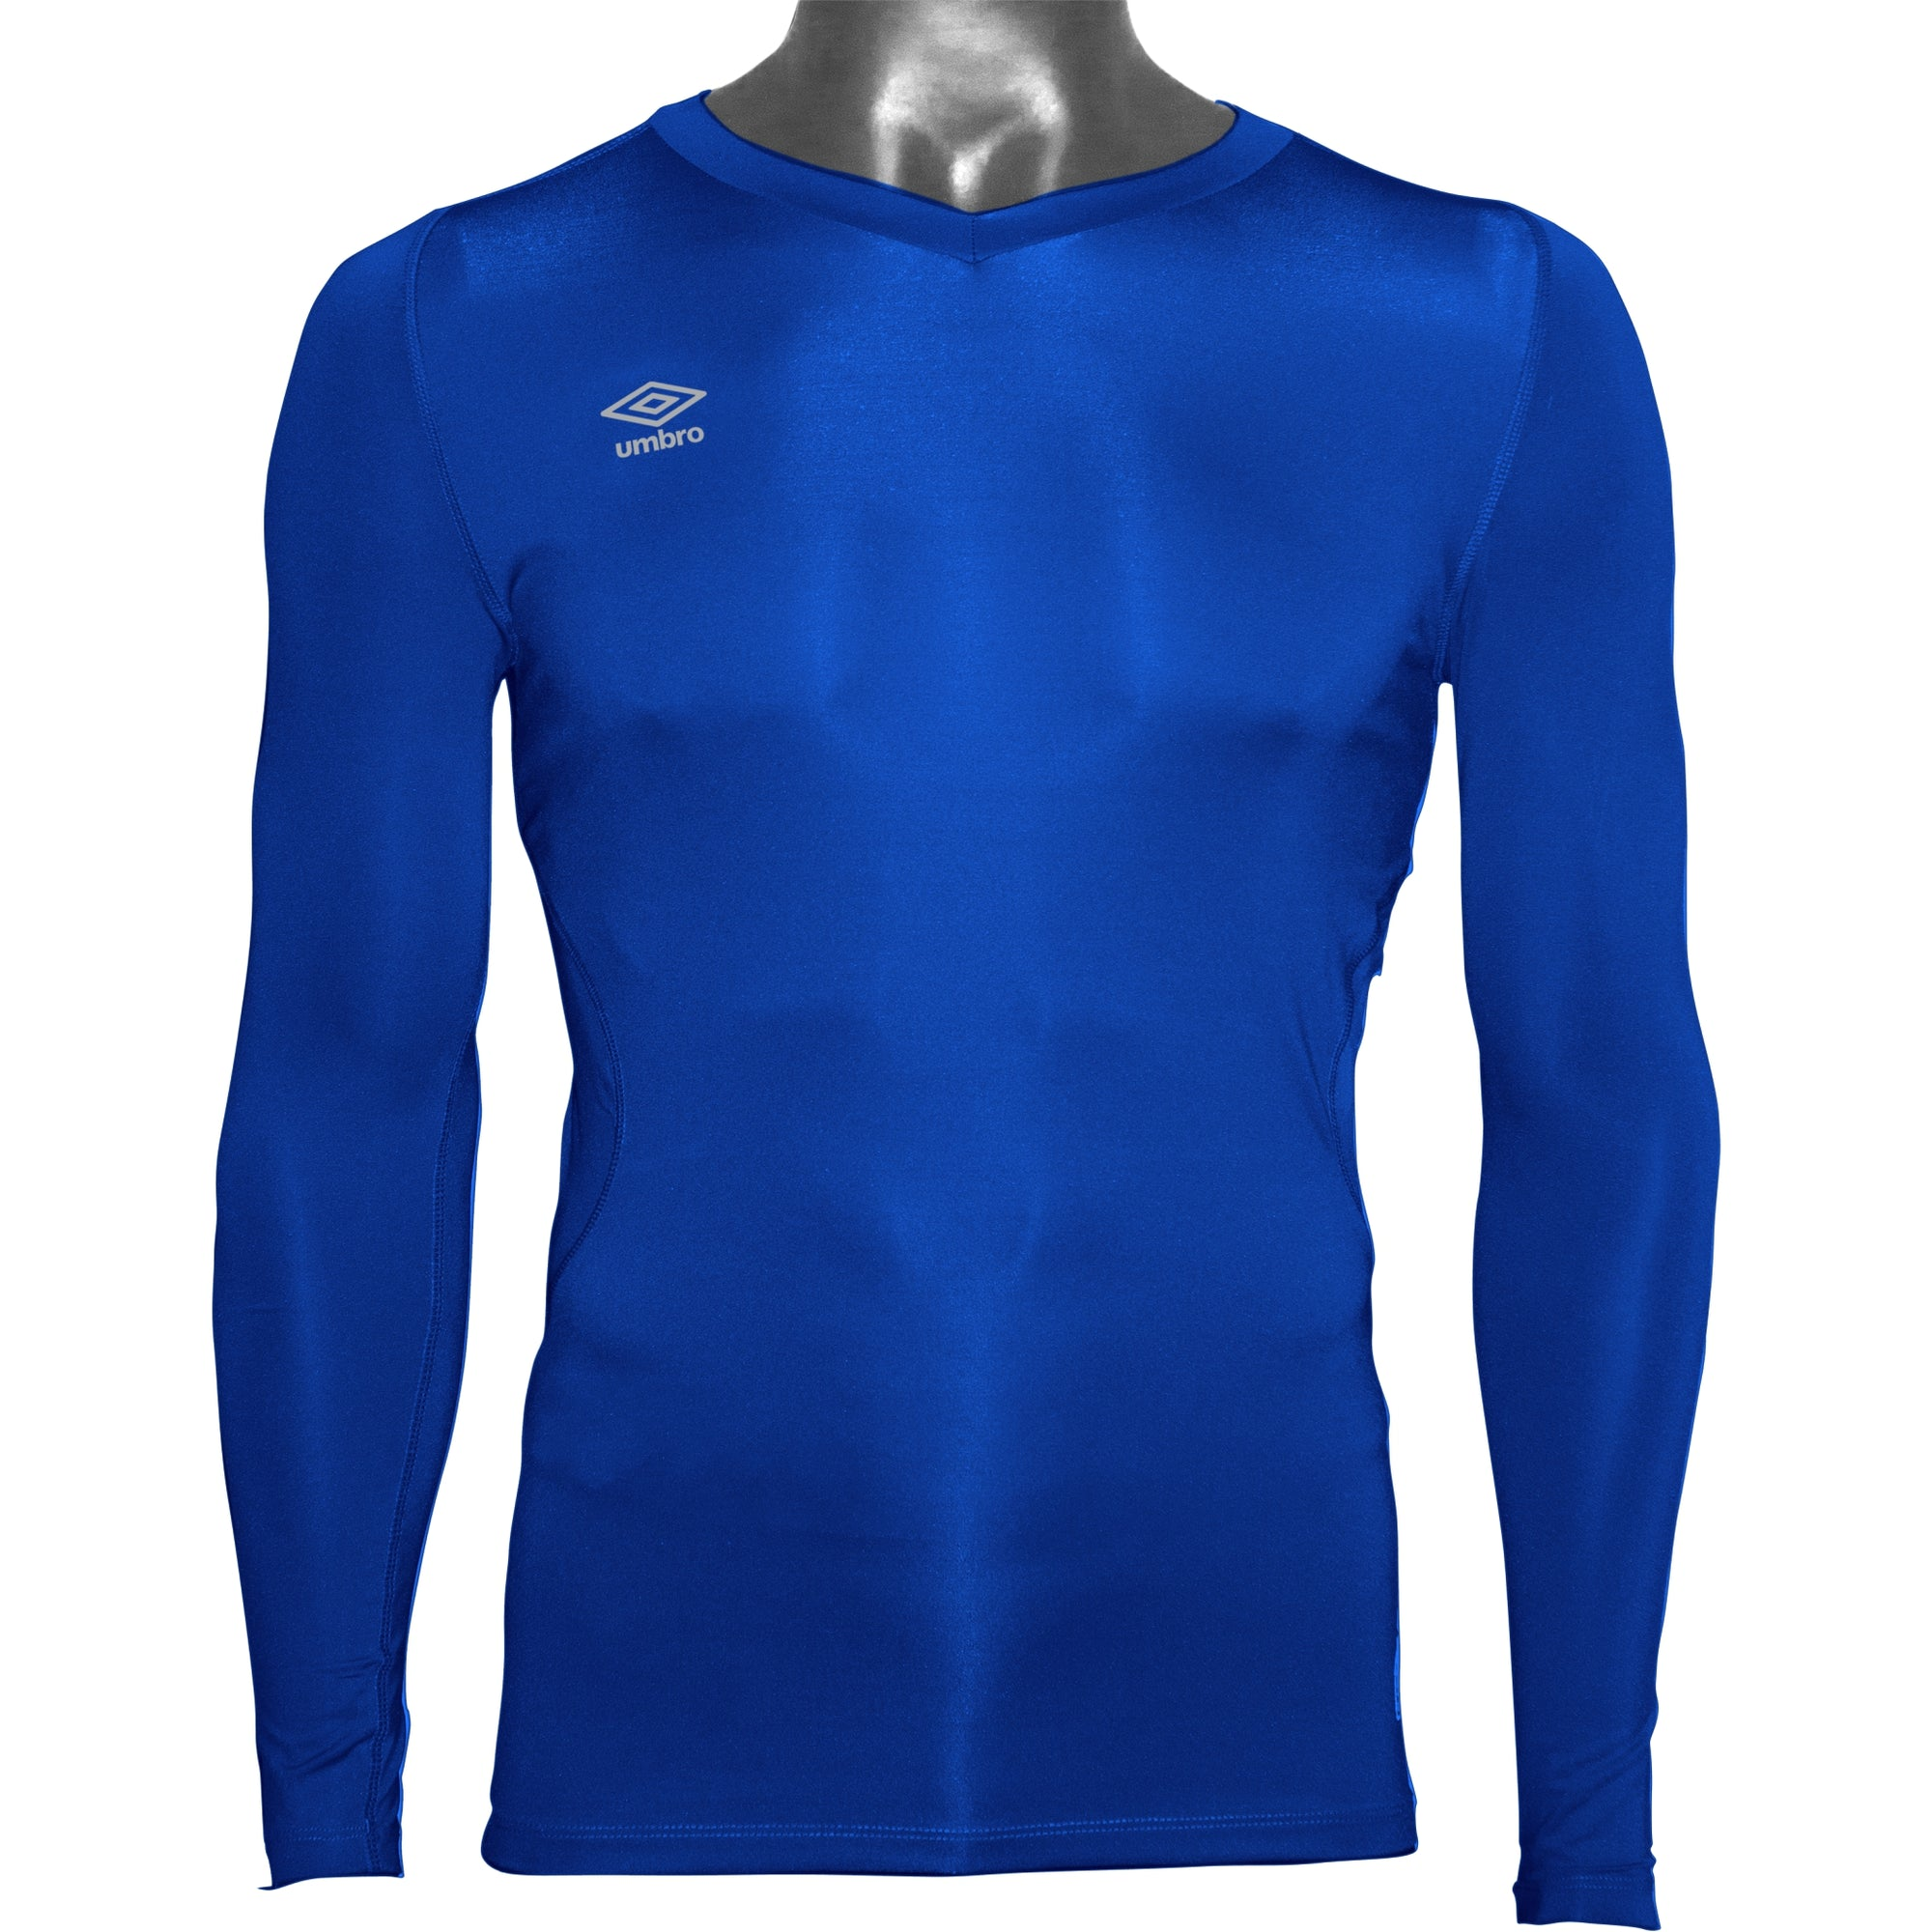 Umbro Elite V Neck baselayer in TW Royal with reflective stacked diamond logo on right chest